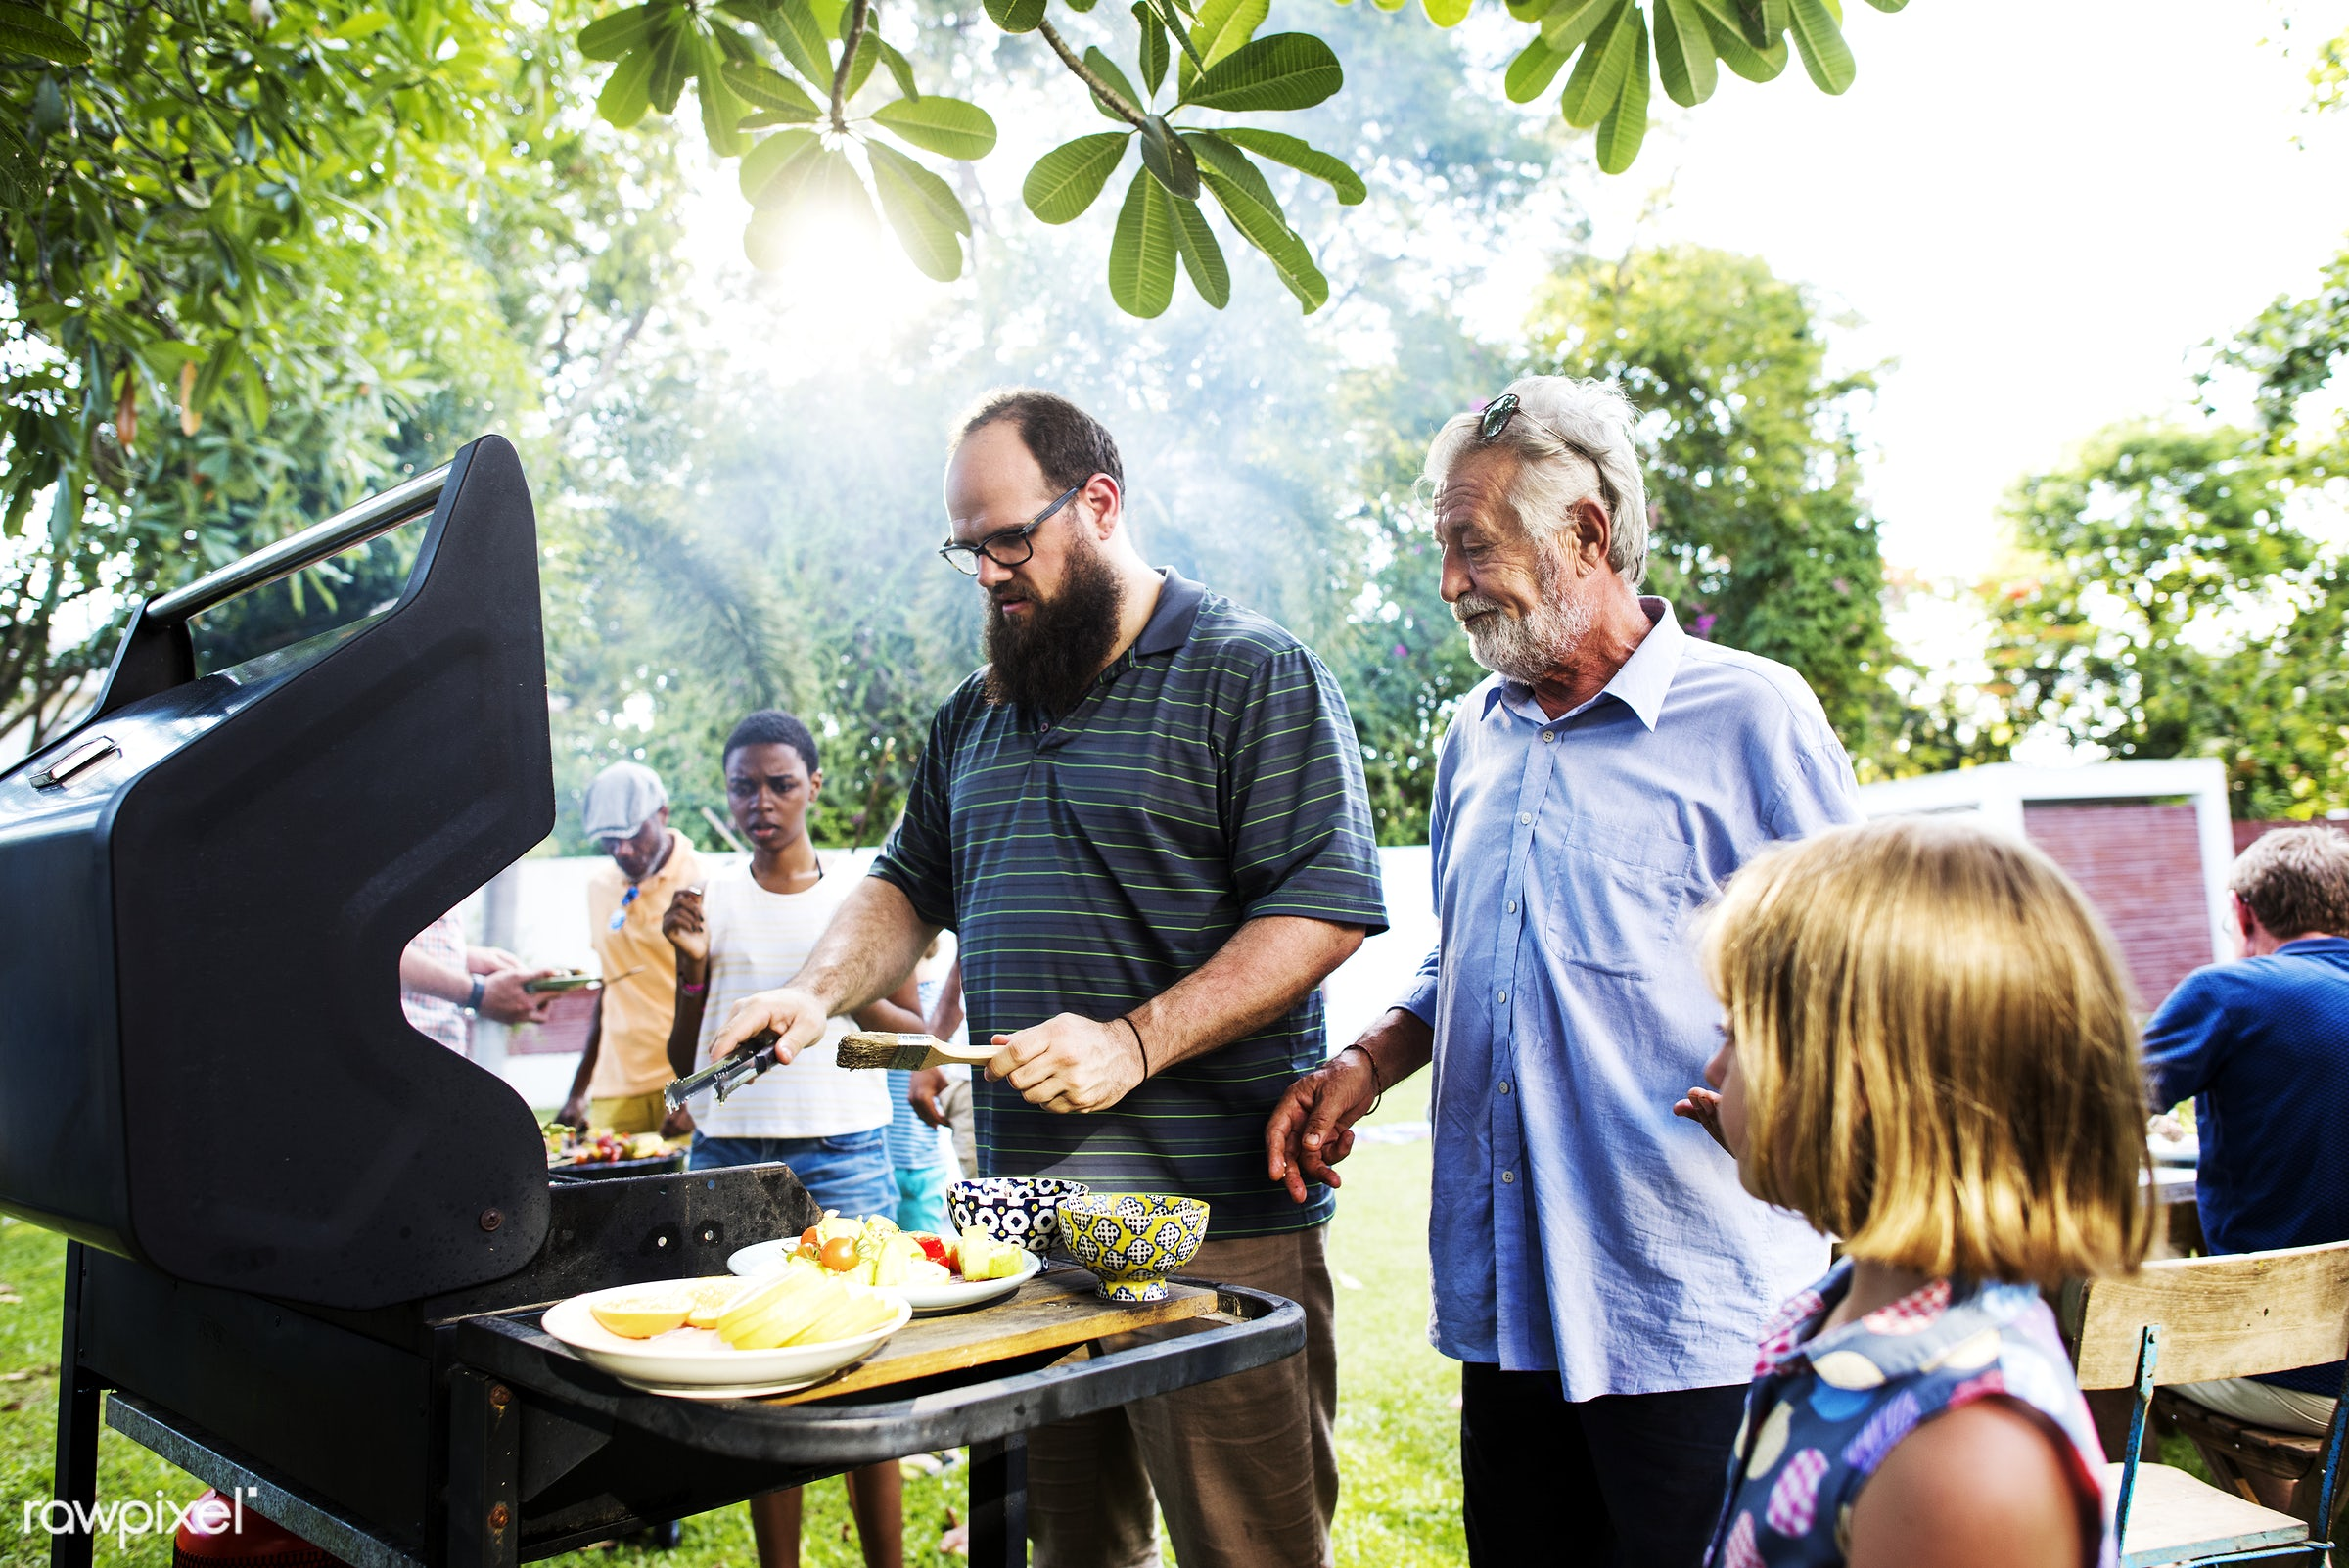 Diverse people enjoying barbecue party together - barbecue, family, cooking, backyard, bbq, cook, cookout, diverse, food,...